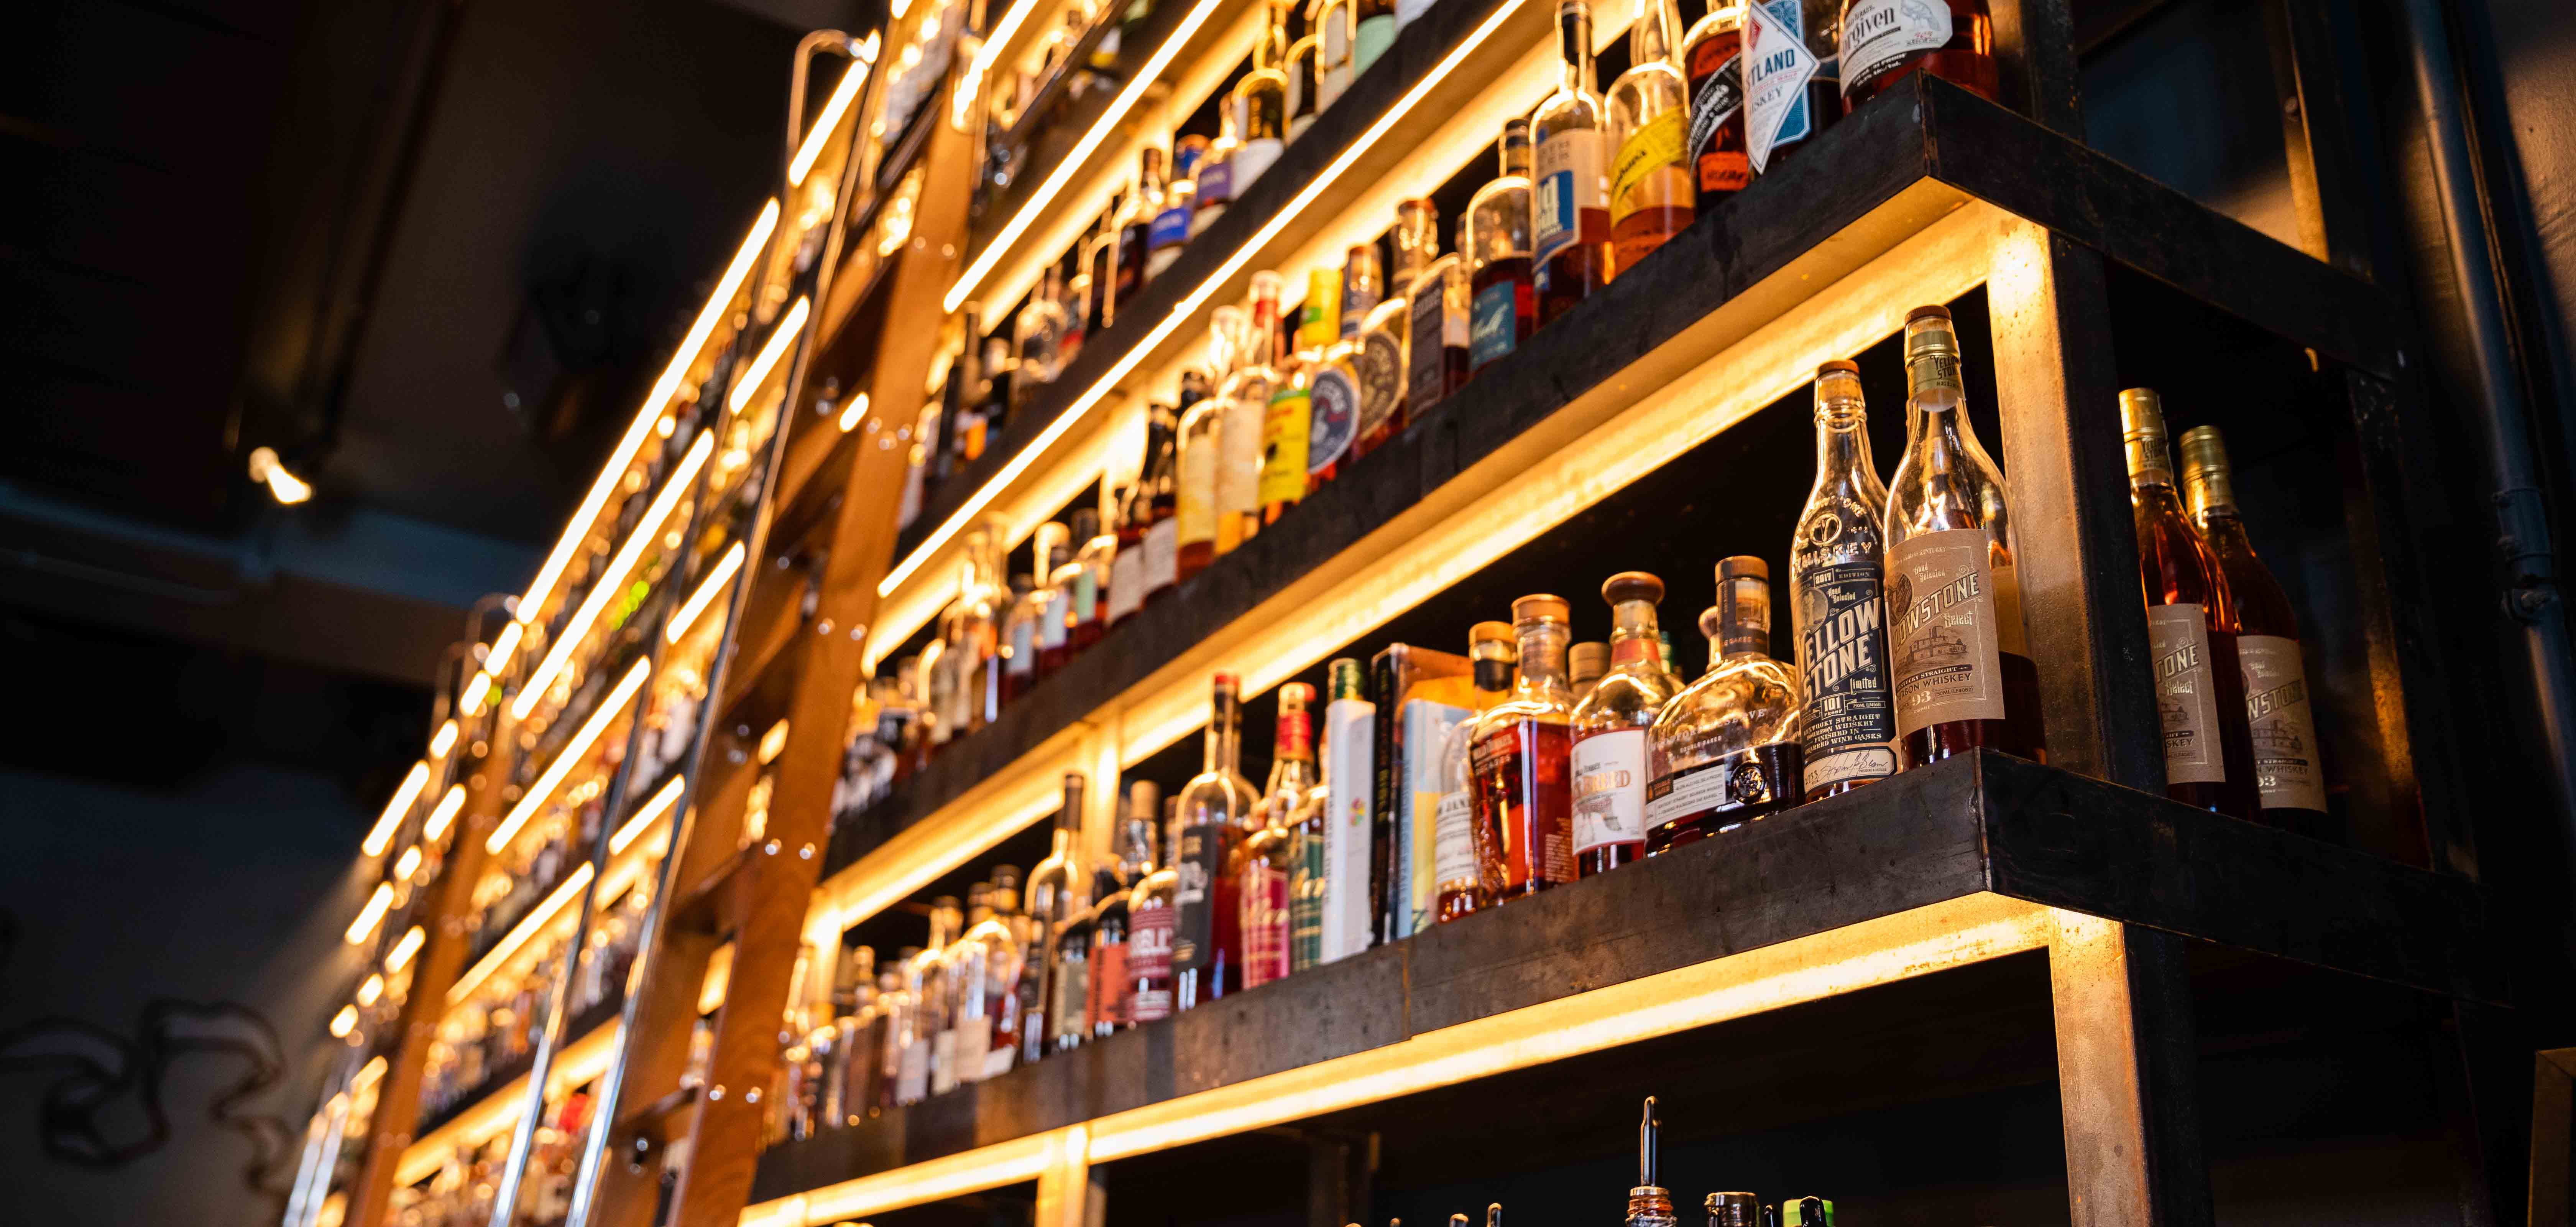 A ladder helps bartenders reach all of libations at upscale Tulsa Arts District bar, Valkyrie